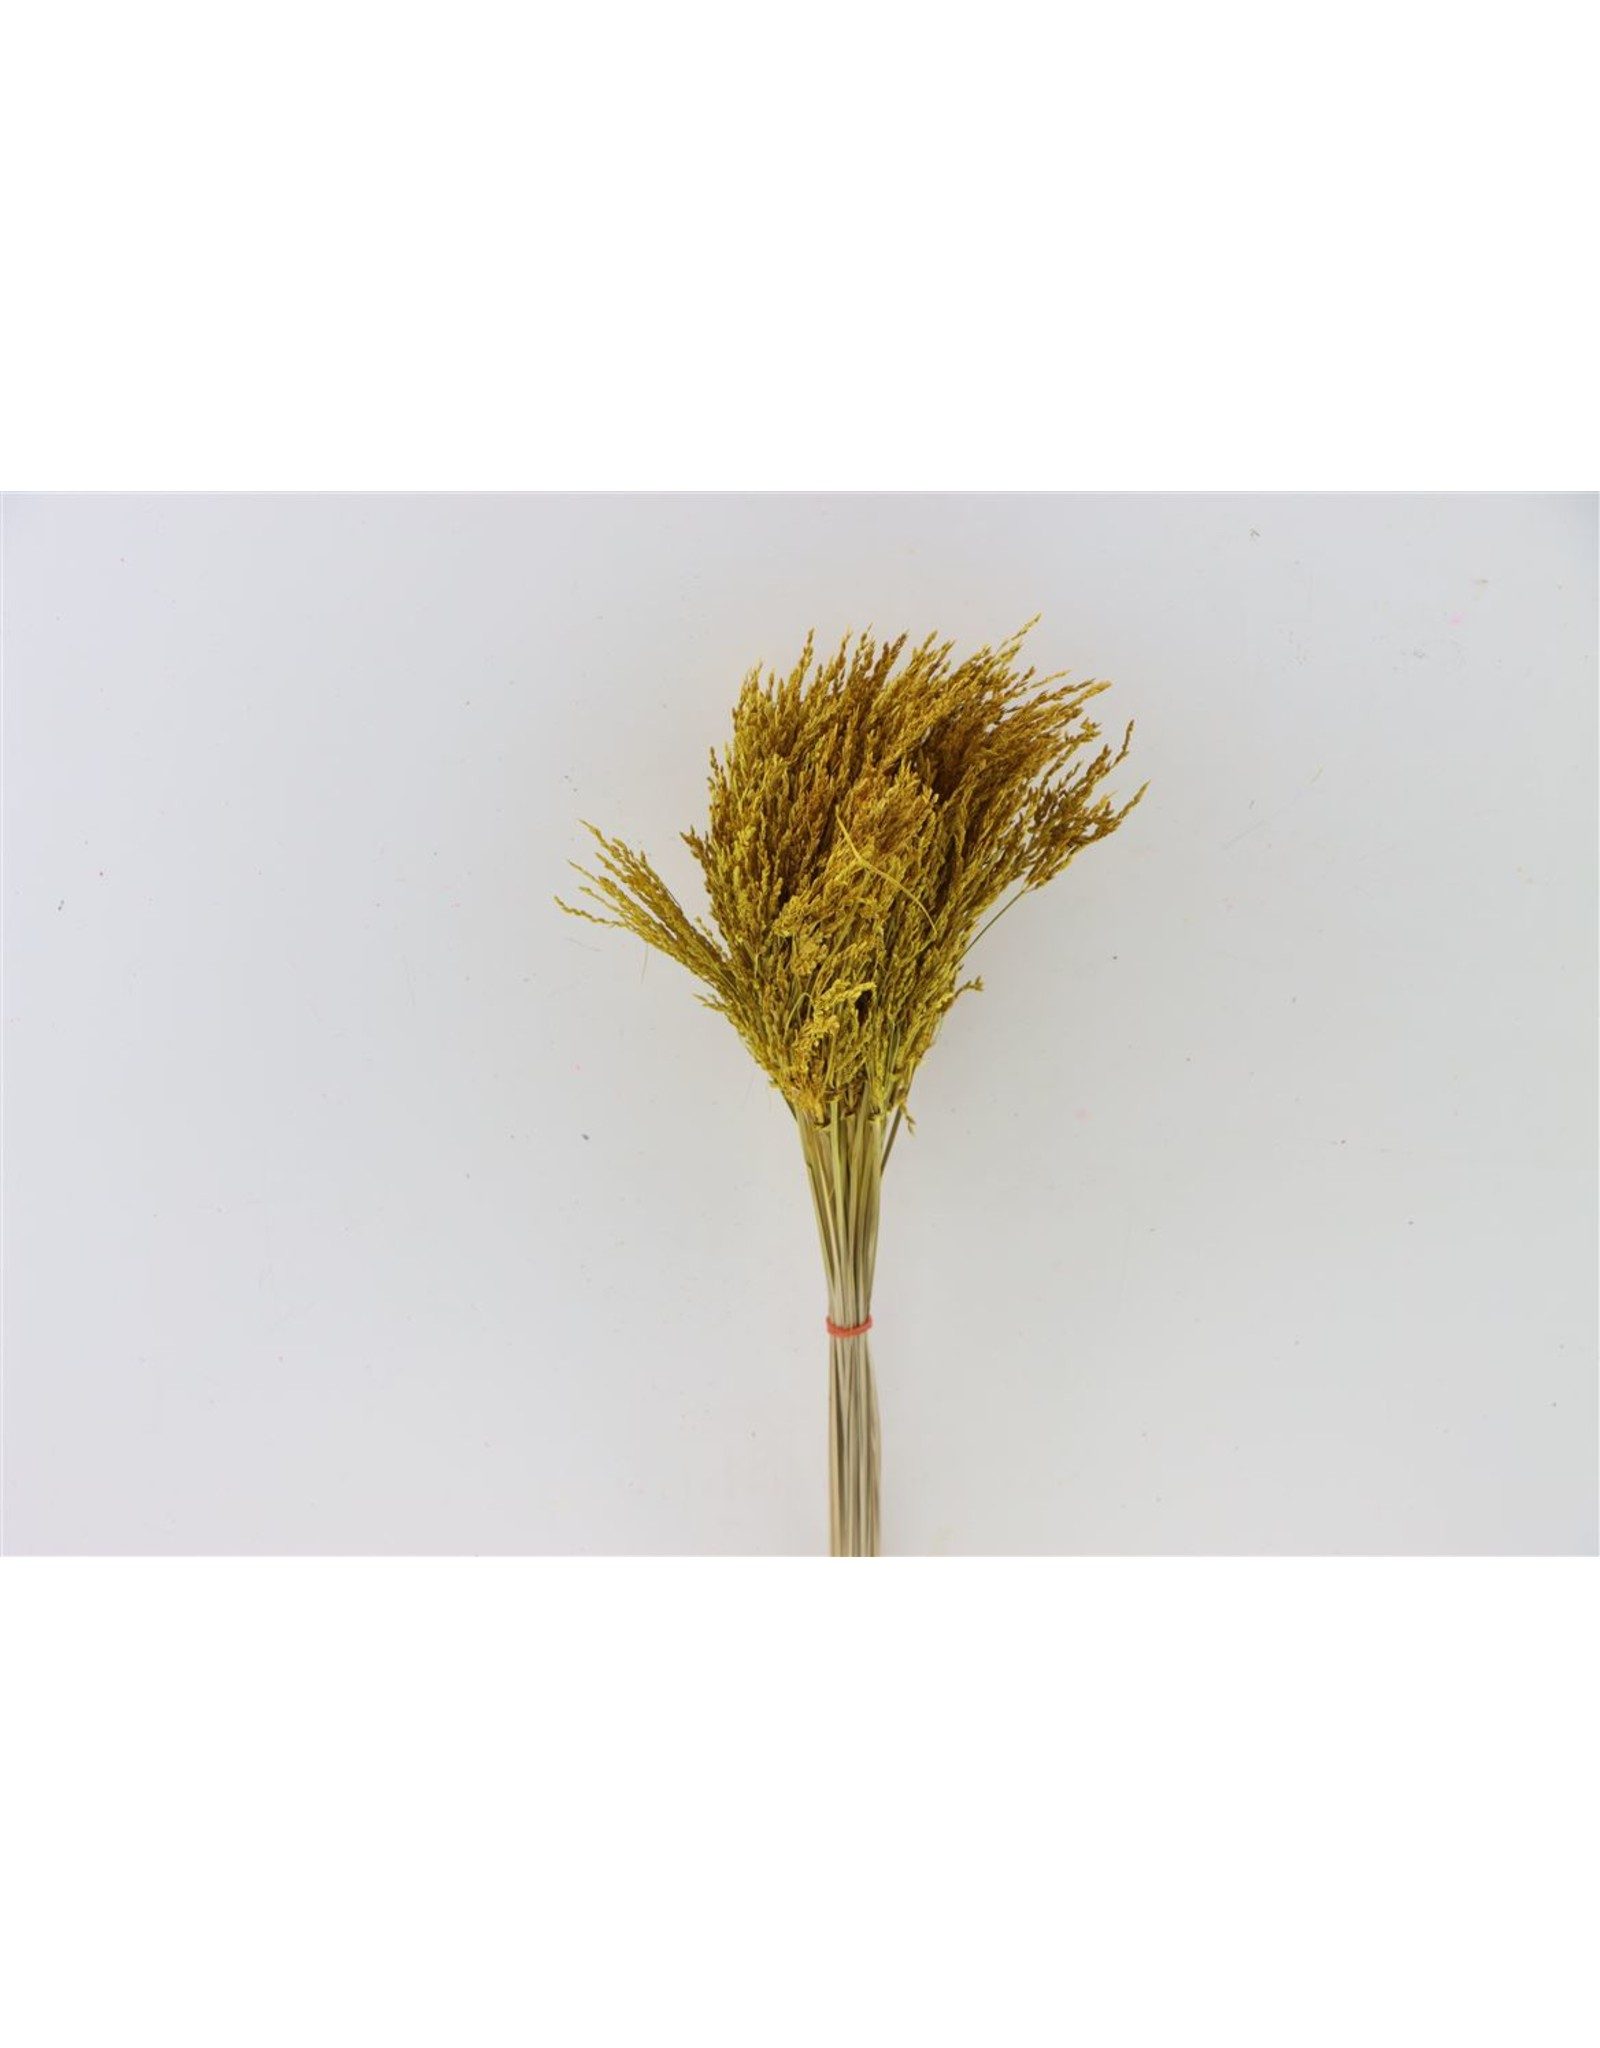 Dried Umbr. Sedge Sm. Leaf Yellow Bunch x 2